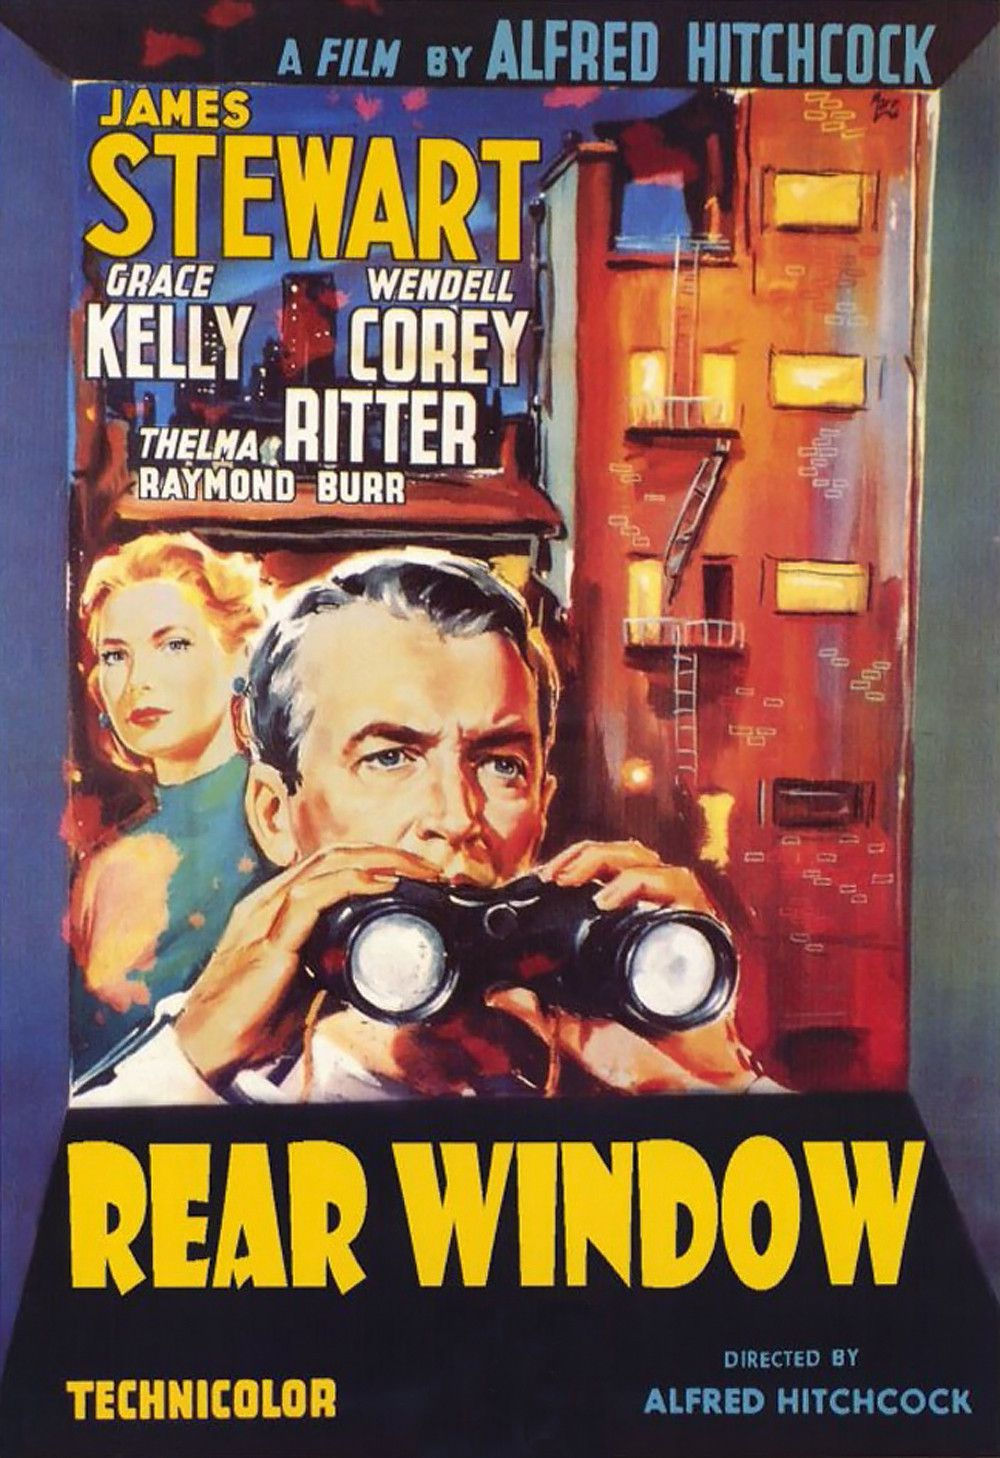 an analysis of the movie rear window One of the most crucial elements of rear window, and a very clever tactic  art  essays (8,424)  film & tv studies (3,300)  film review and analysis (1,948)   cropped screenshot from the trailer for the film rear window.